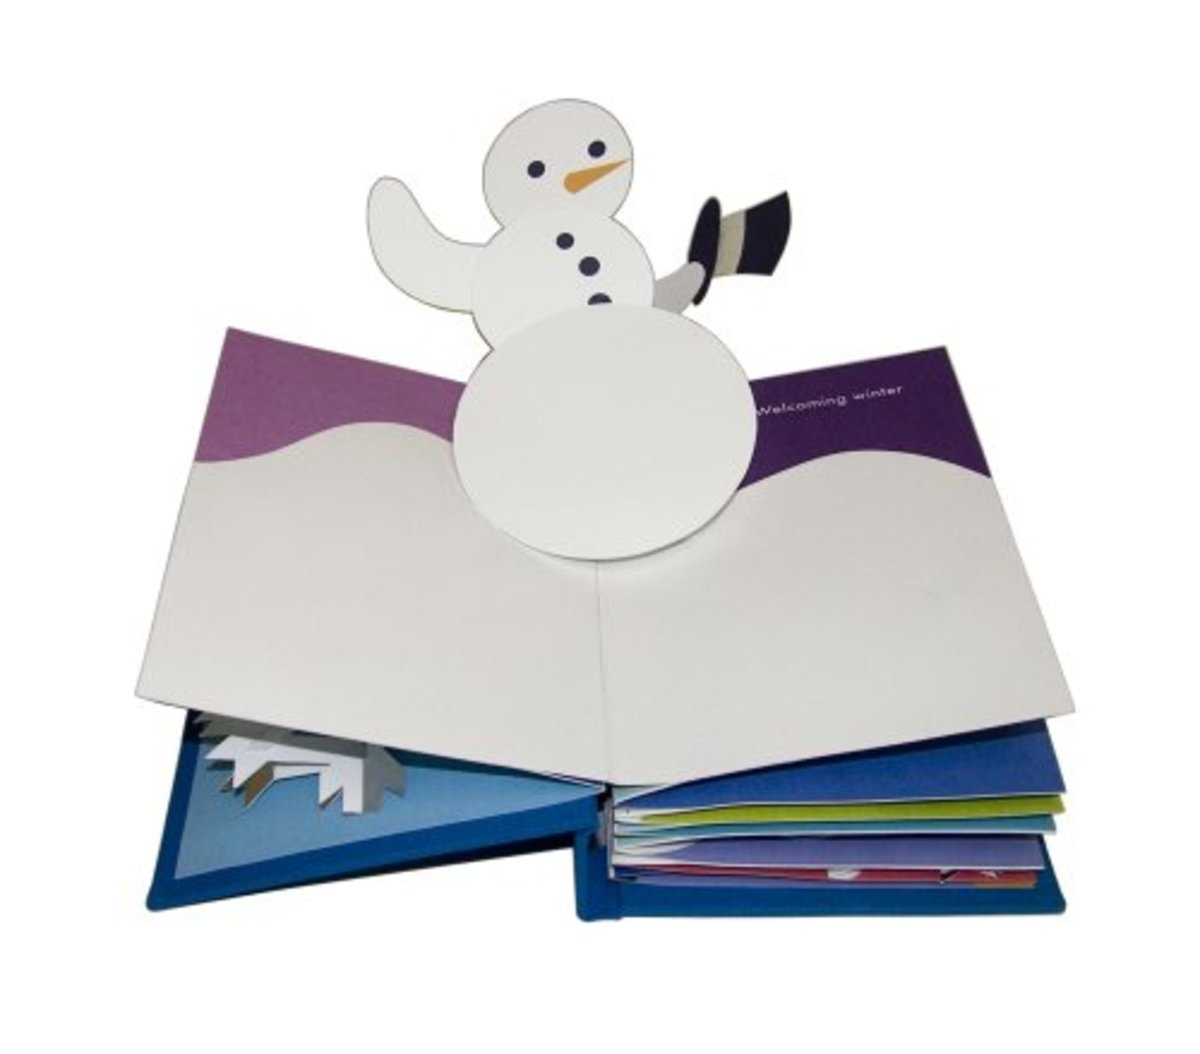 Winter in White by Robert Sabuda snowman pop-up